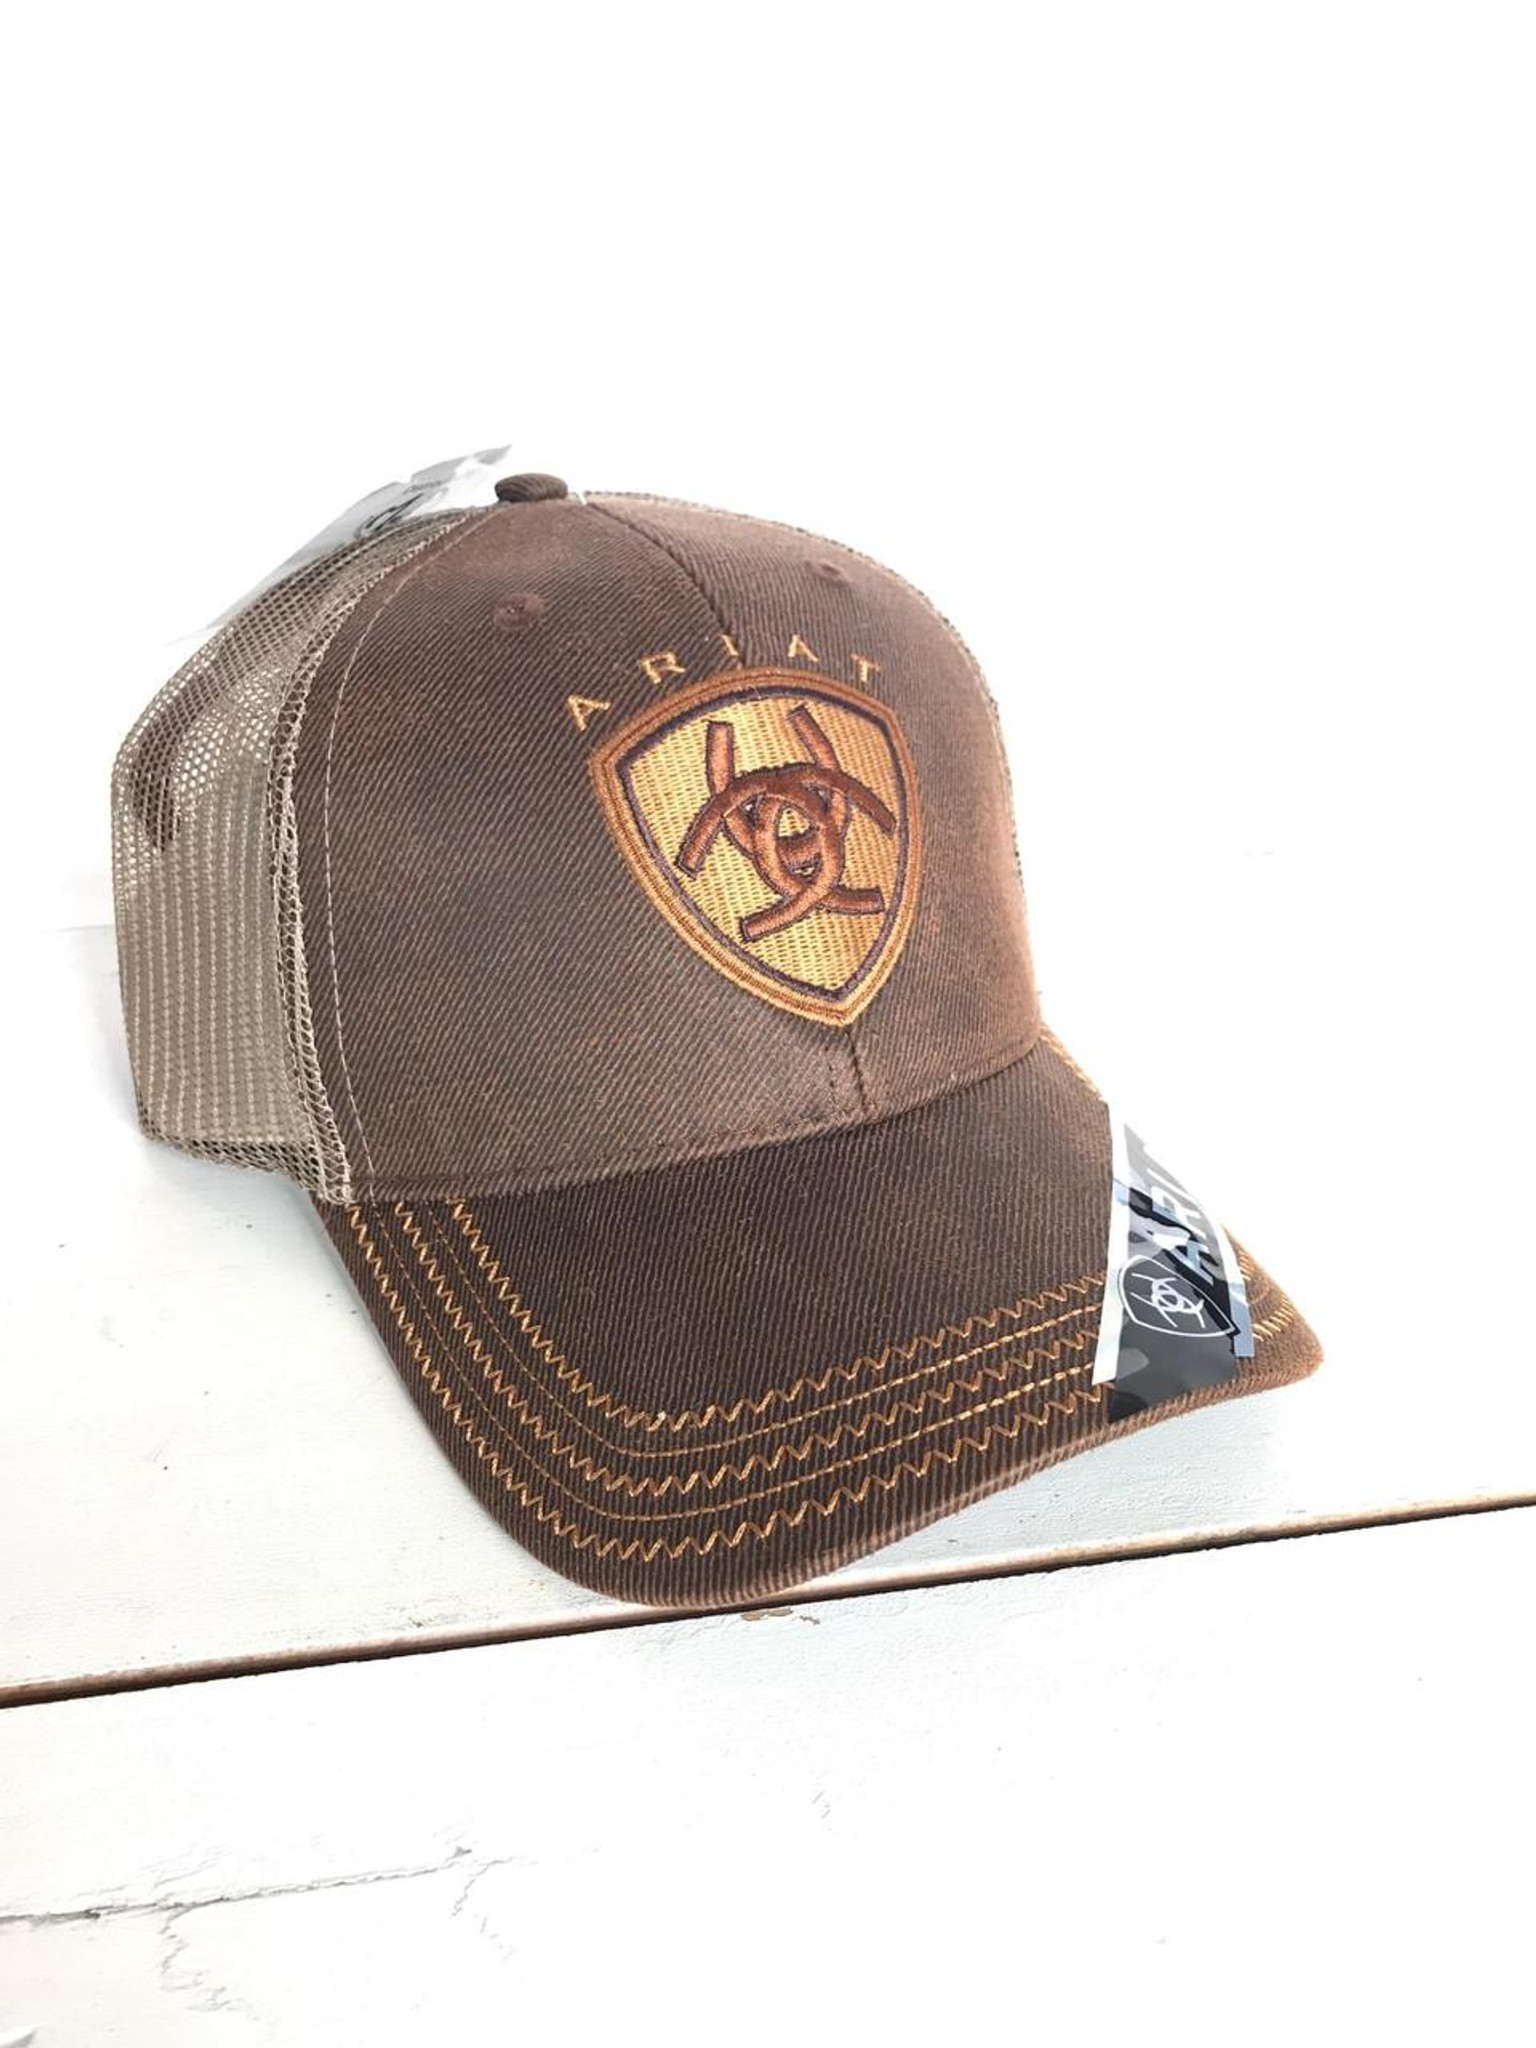 6903a3df7 Ariat Velcro Mesh Hat Brown Oilskin